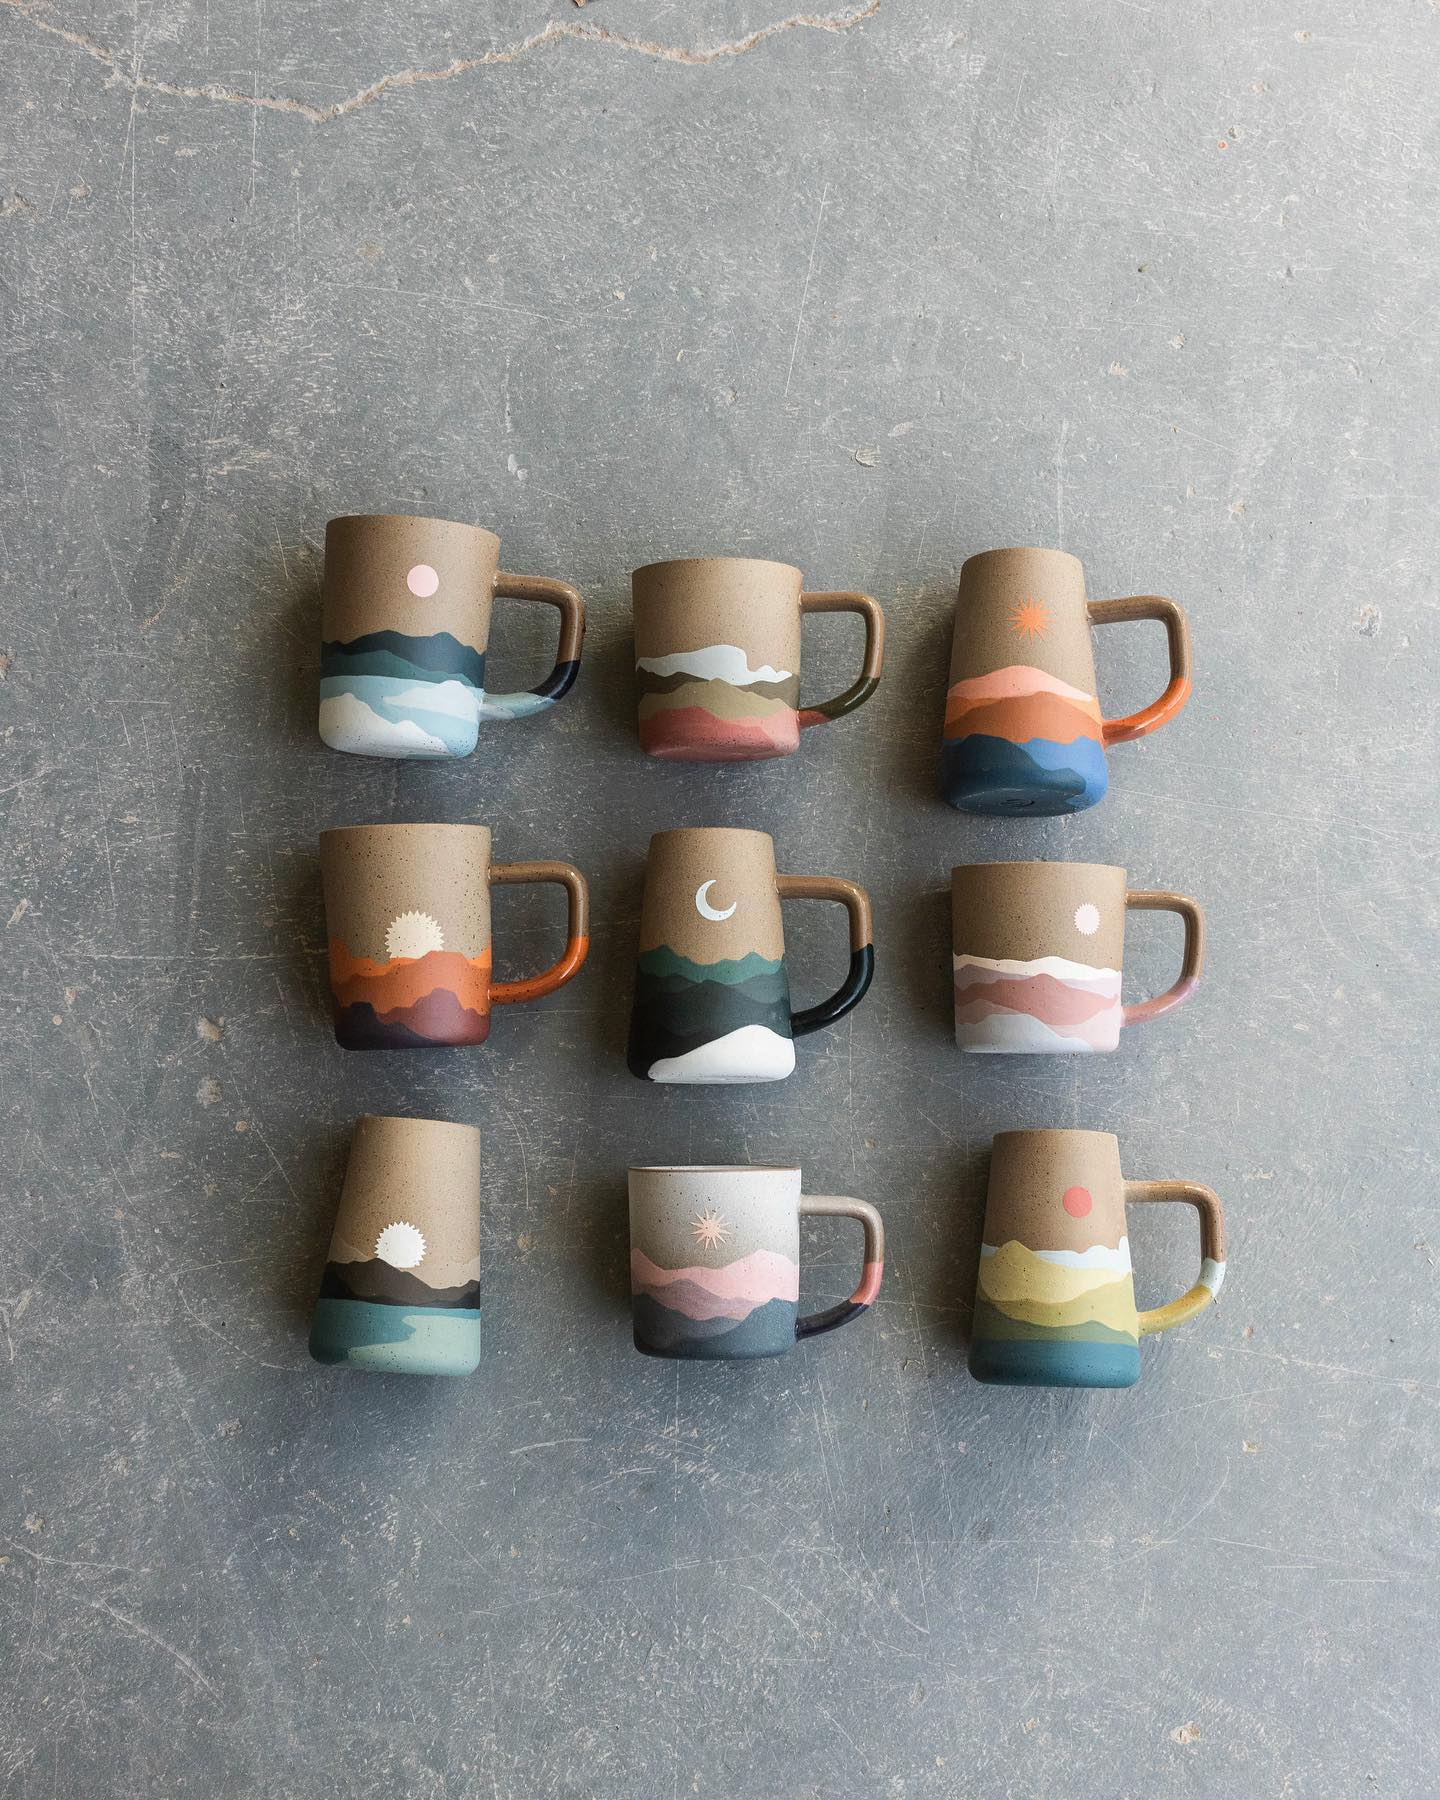 image of callahan ceramics mugs